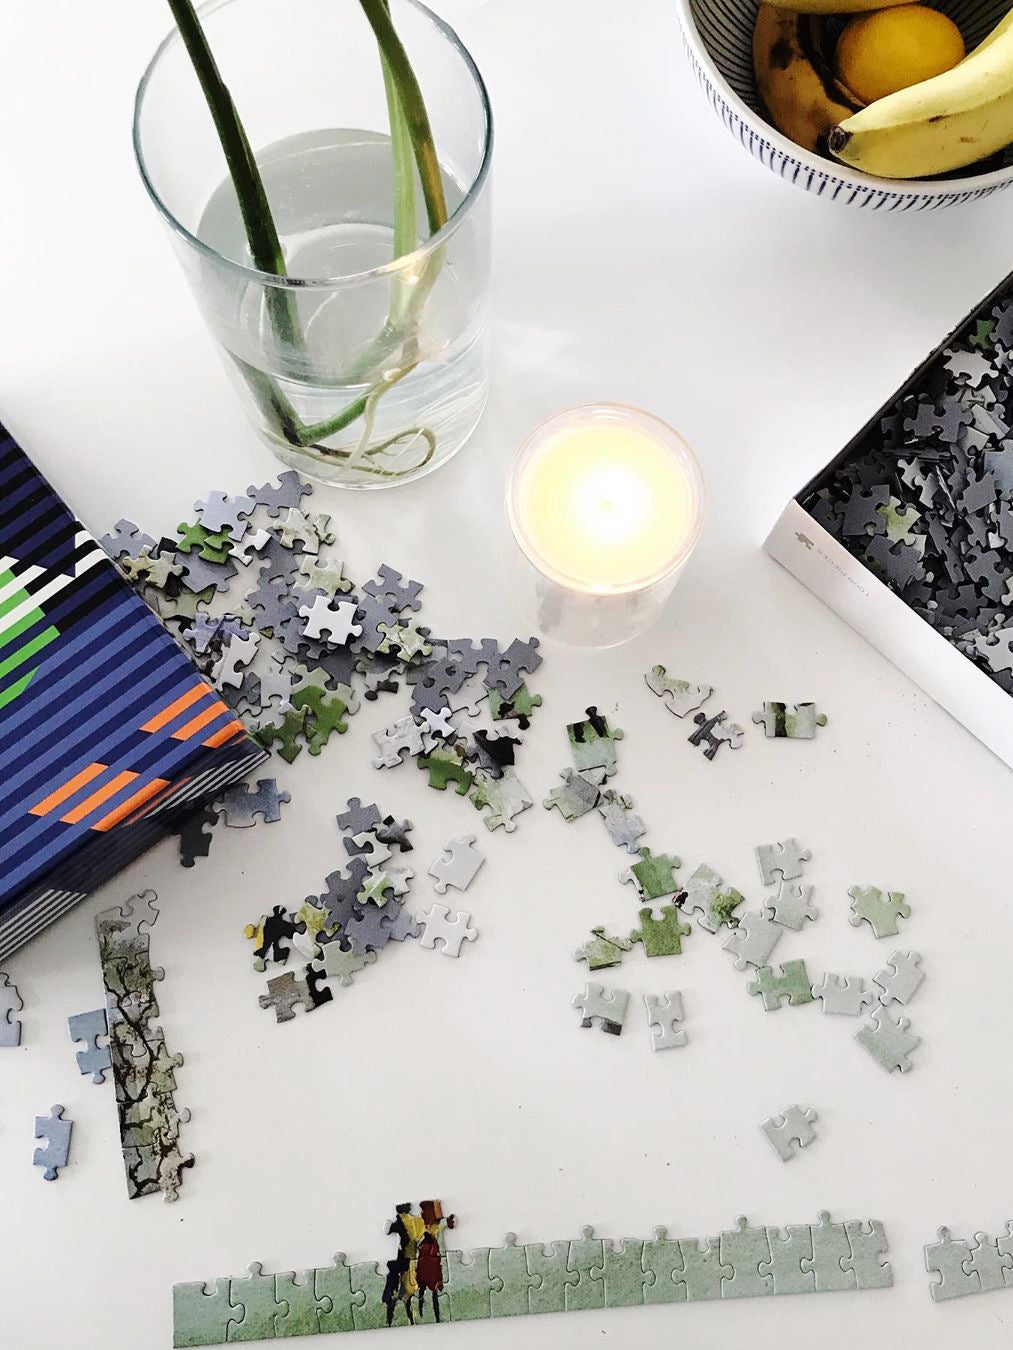 Puzzle on table